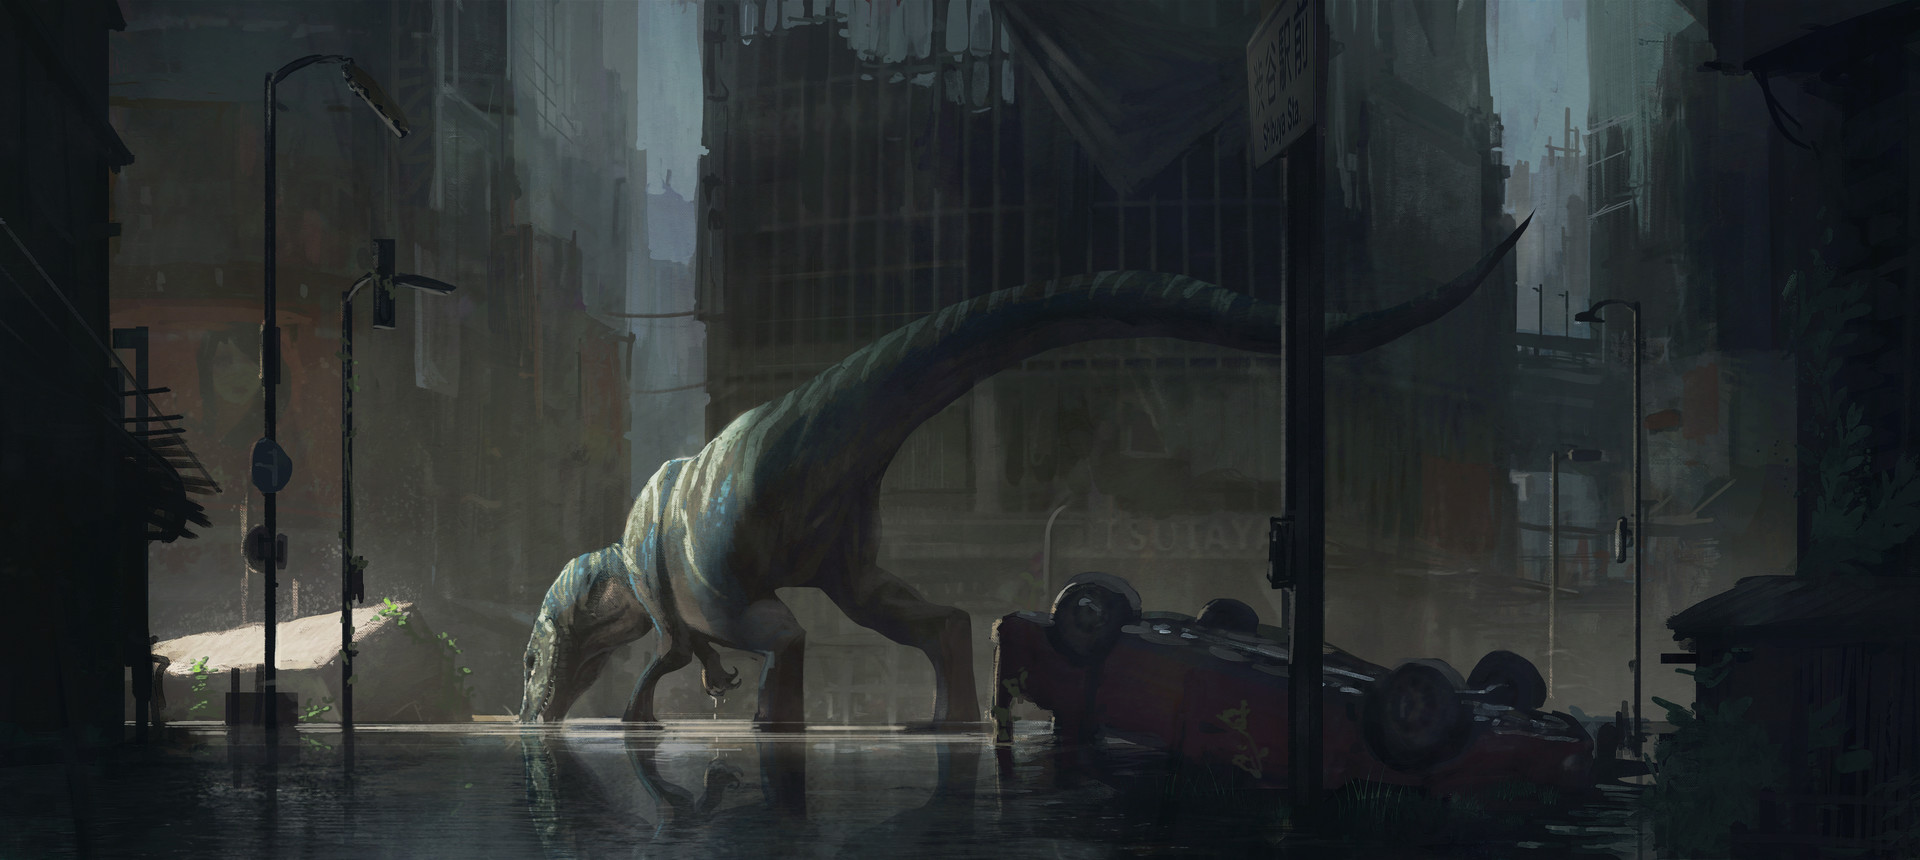 Julien gauthier baryonyx in tokyo